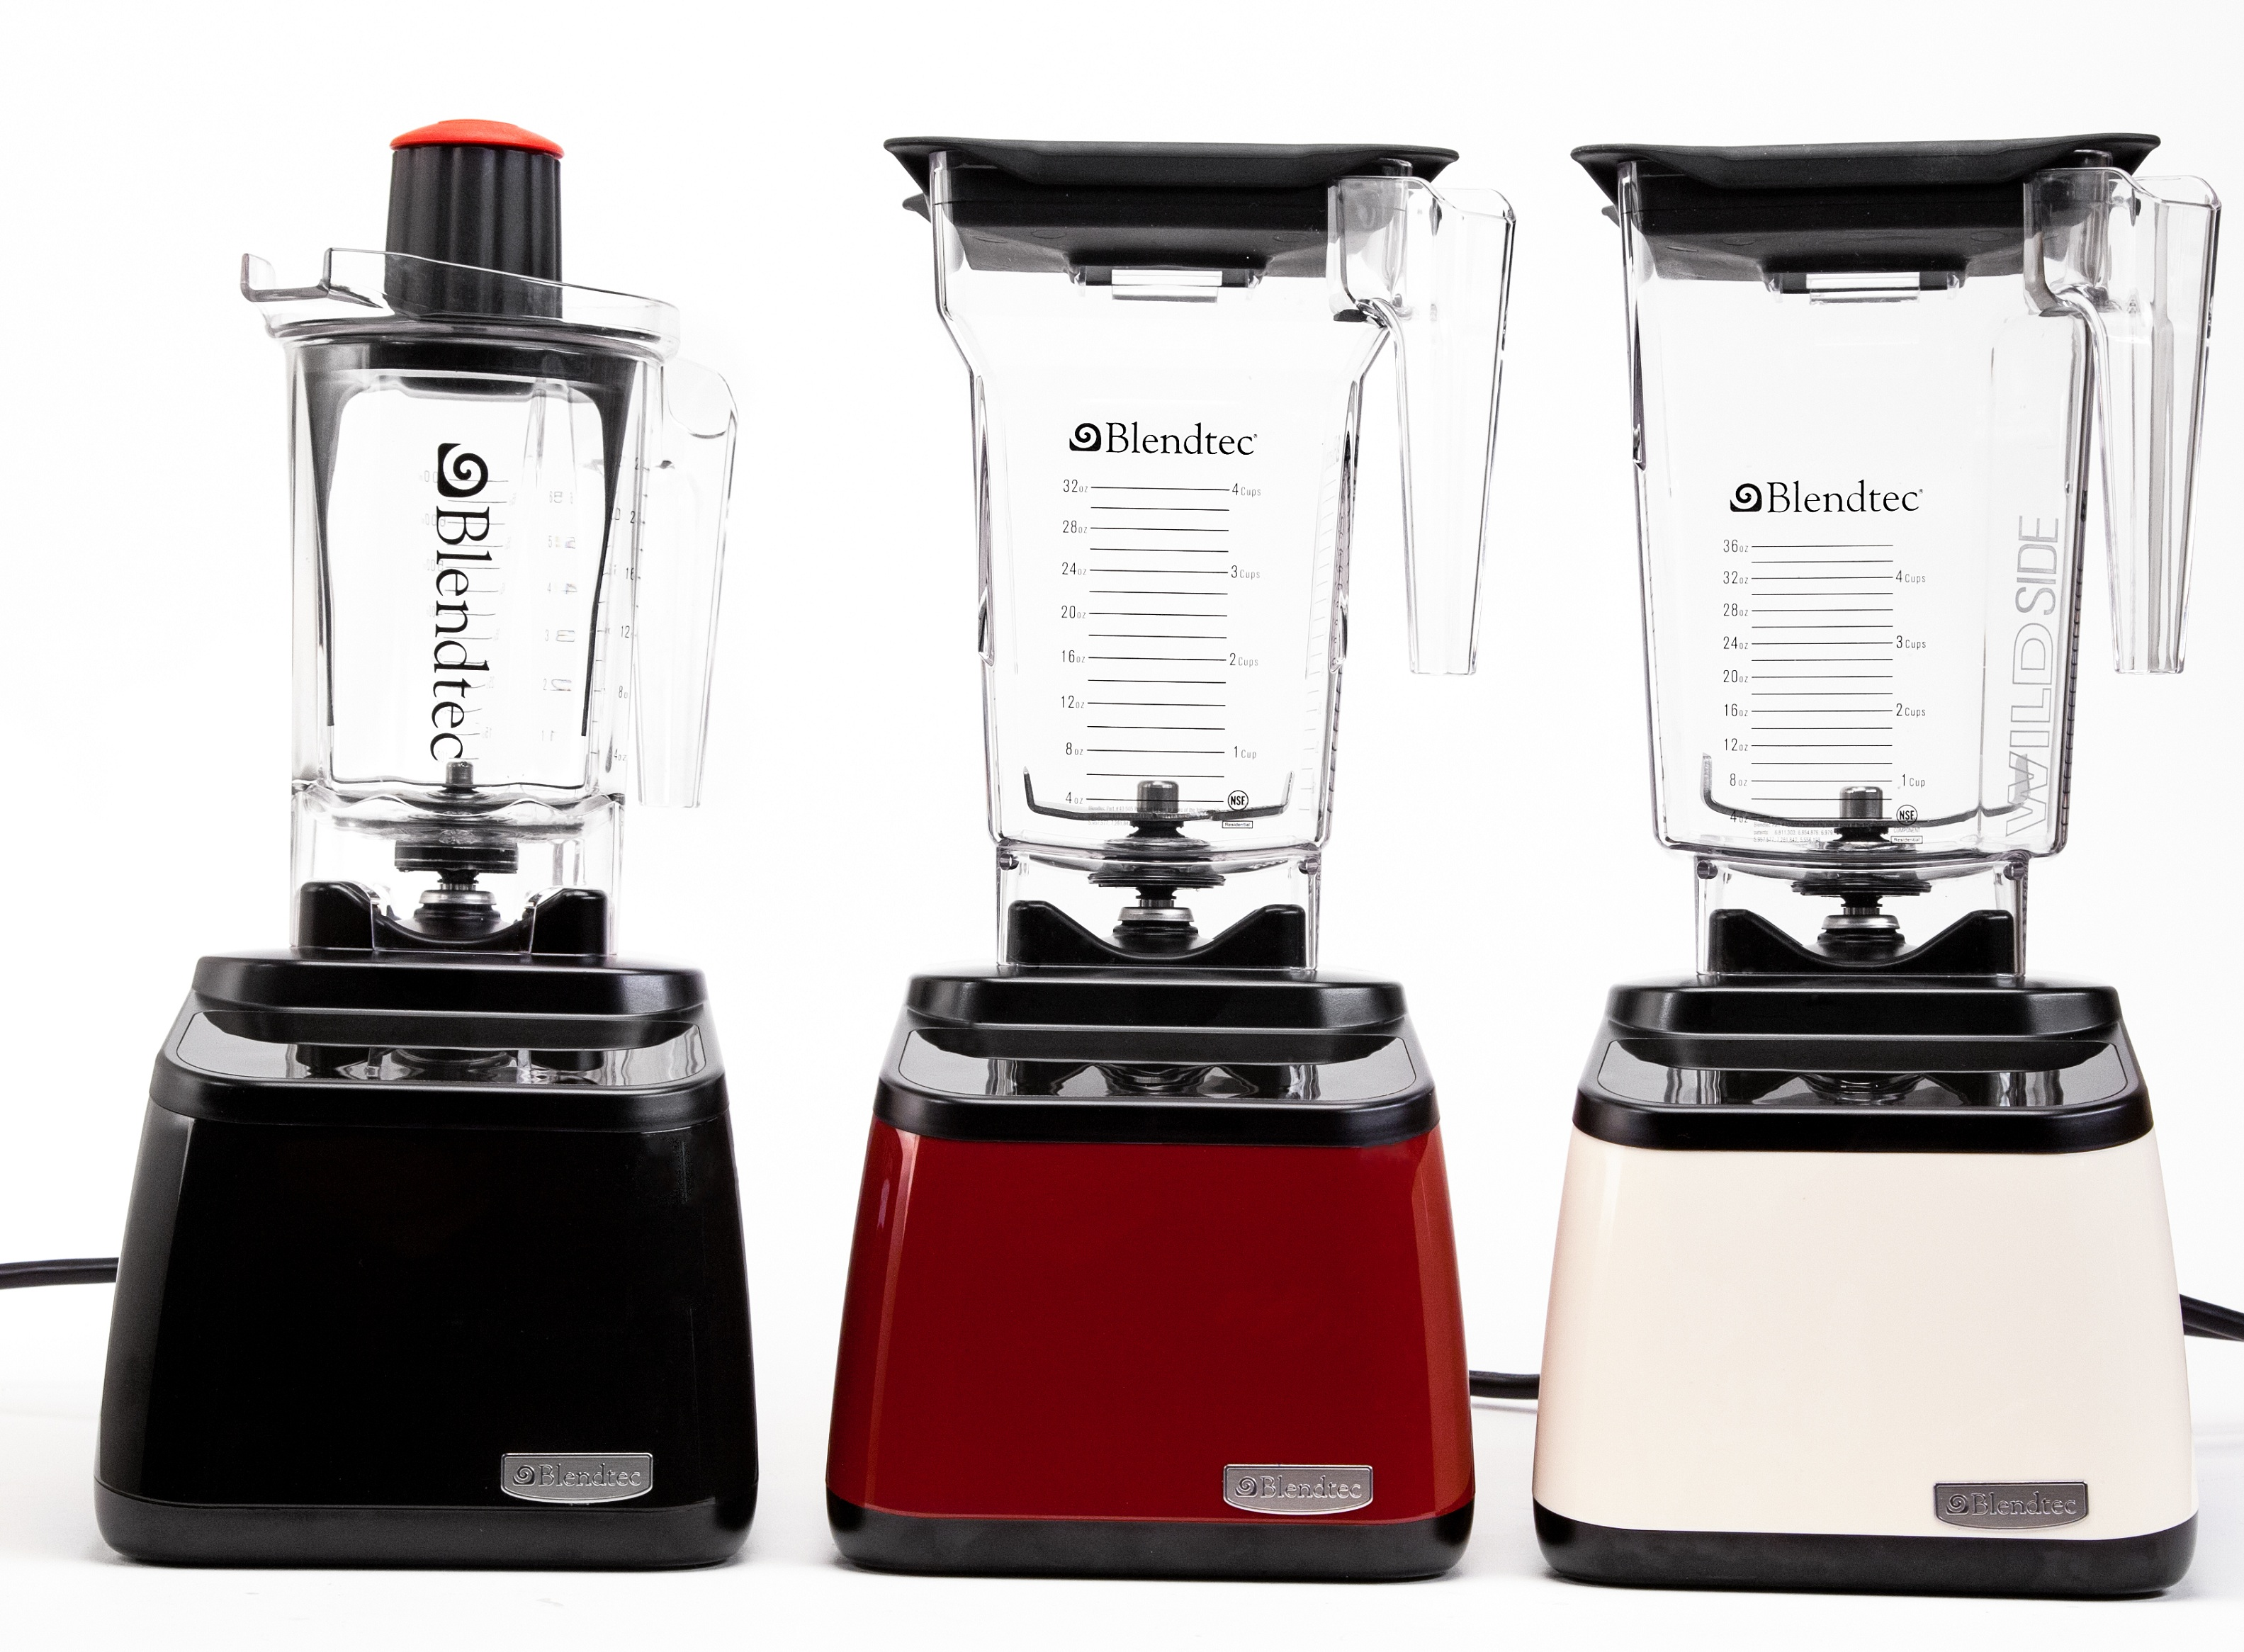 Designer series blender in 3 colors